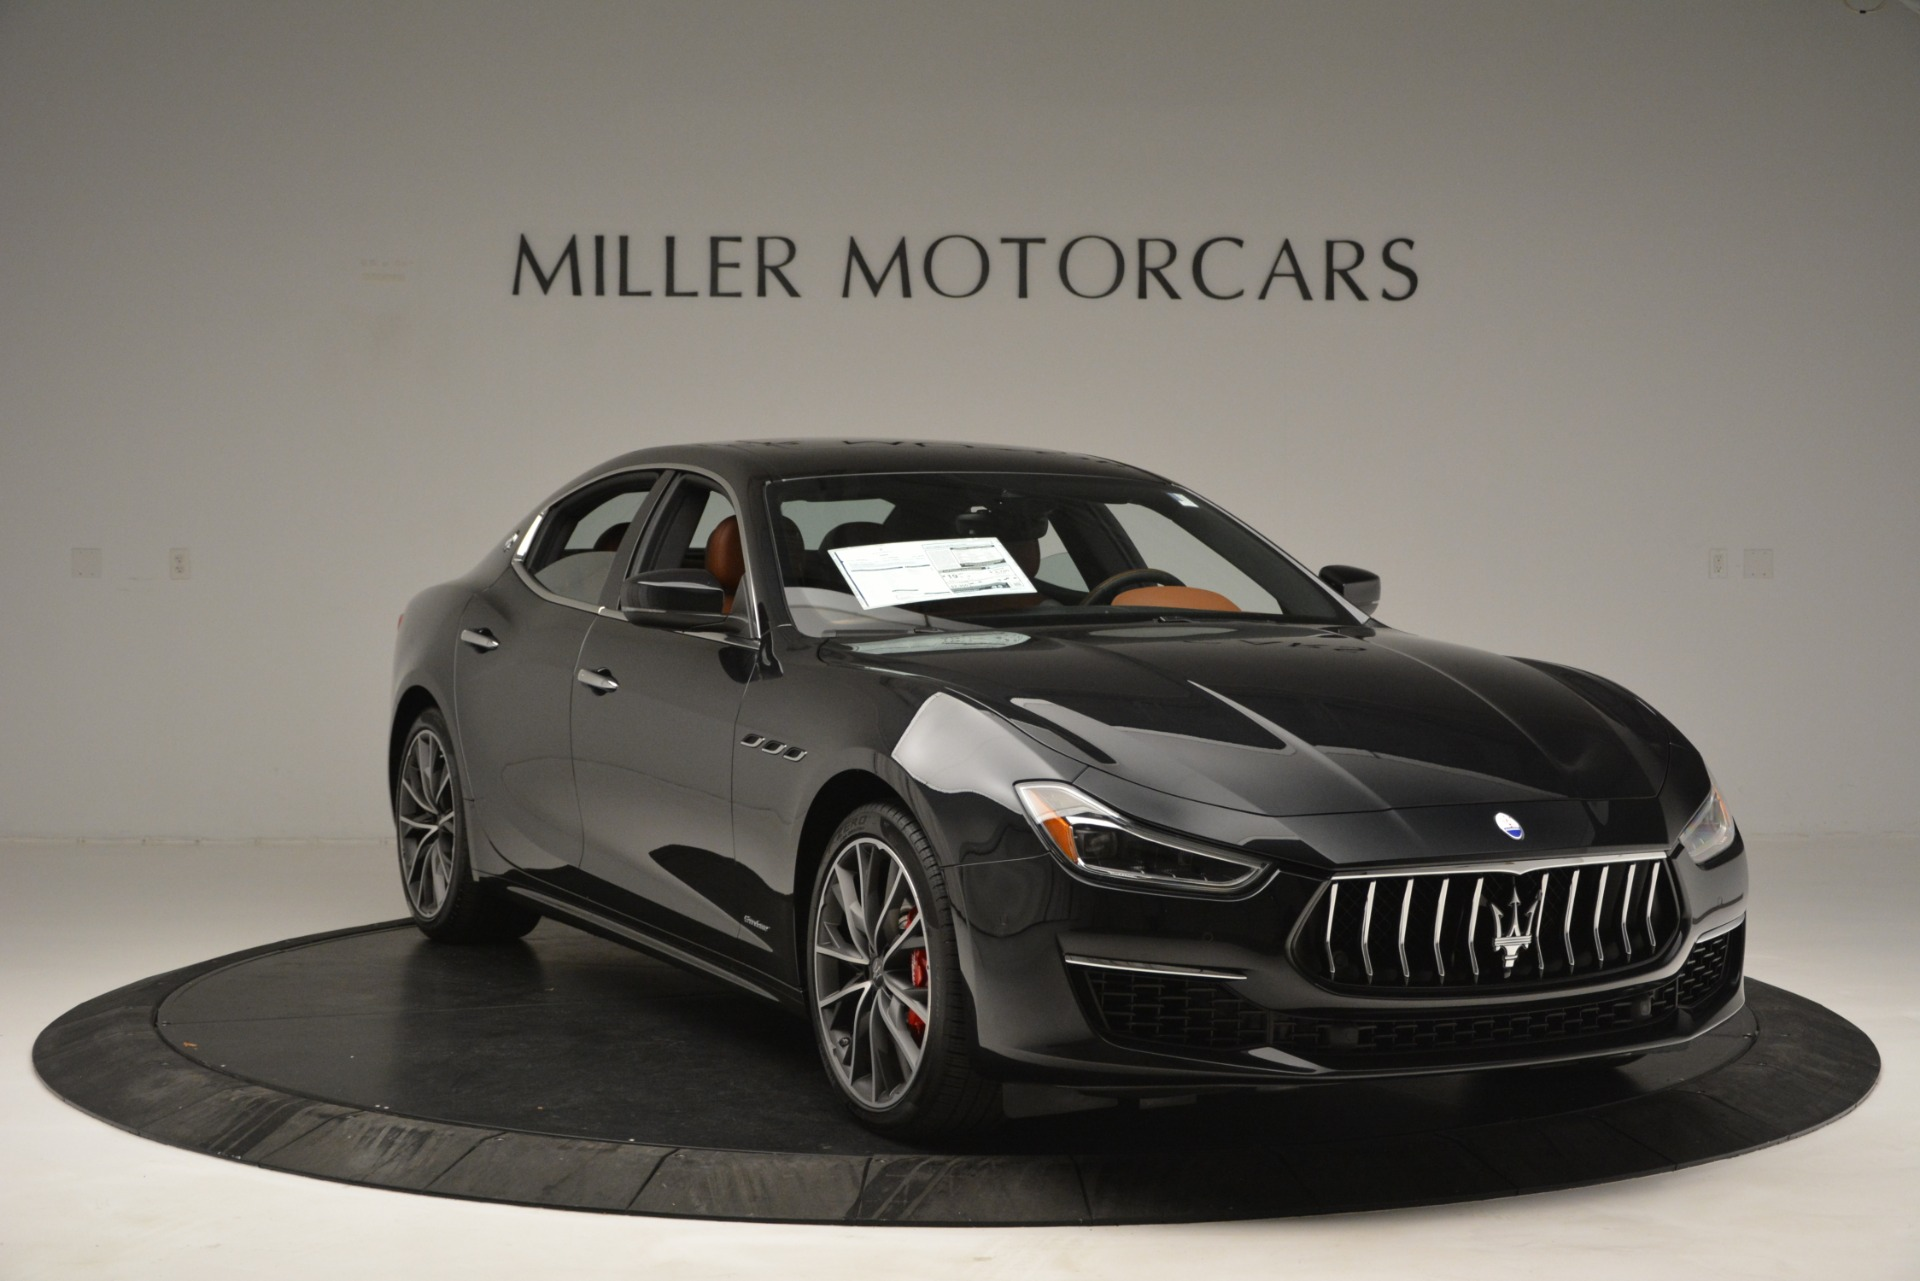 New 2019 Maserati Ghibli S Q4 GranLusso For Sale In Greenwich, CT 2590_p11